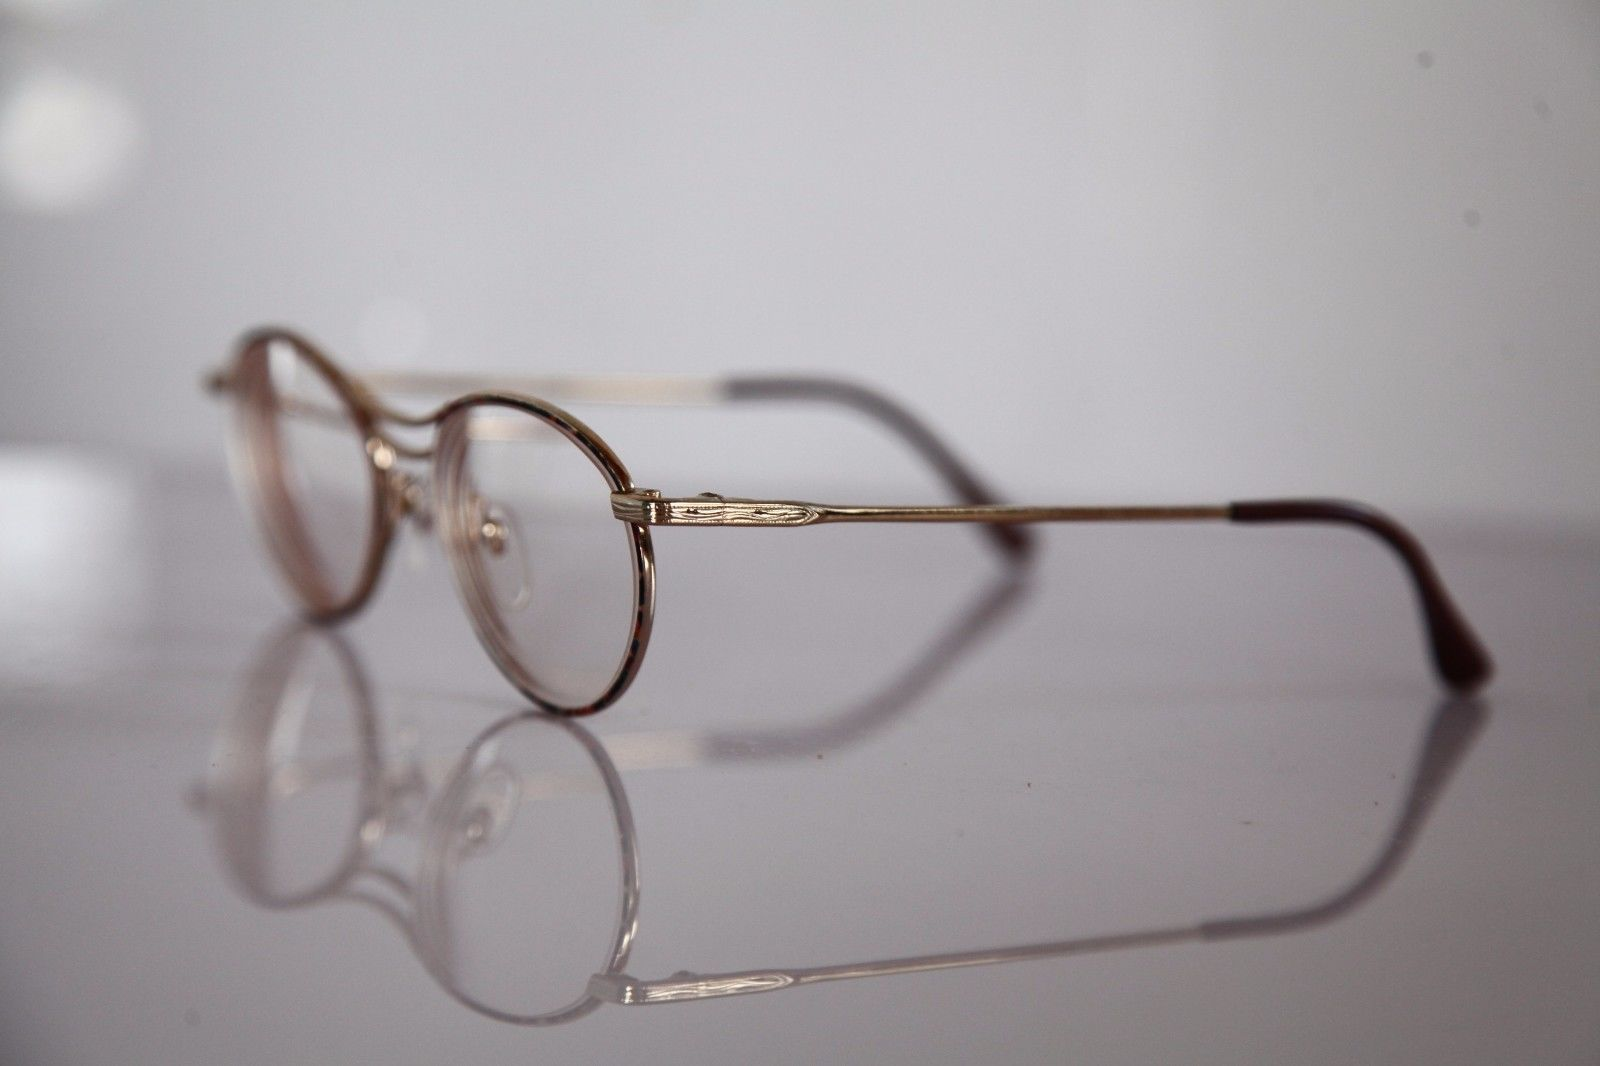 Mc PENNY Eyewear, Gold Frame,  RX-able Clear Lenses Prescription.